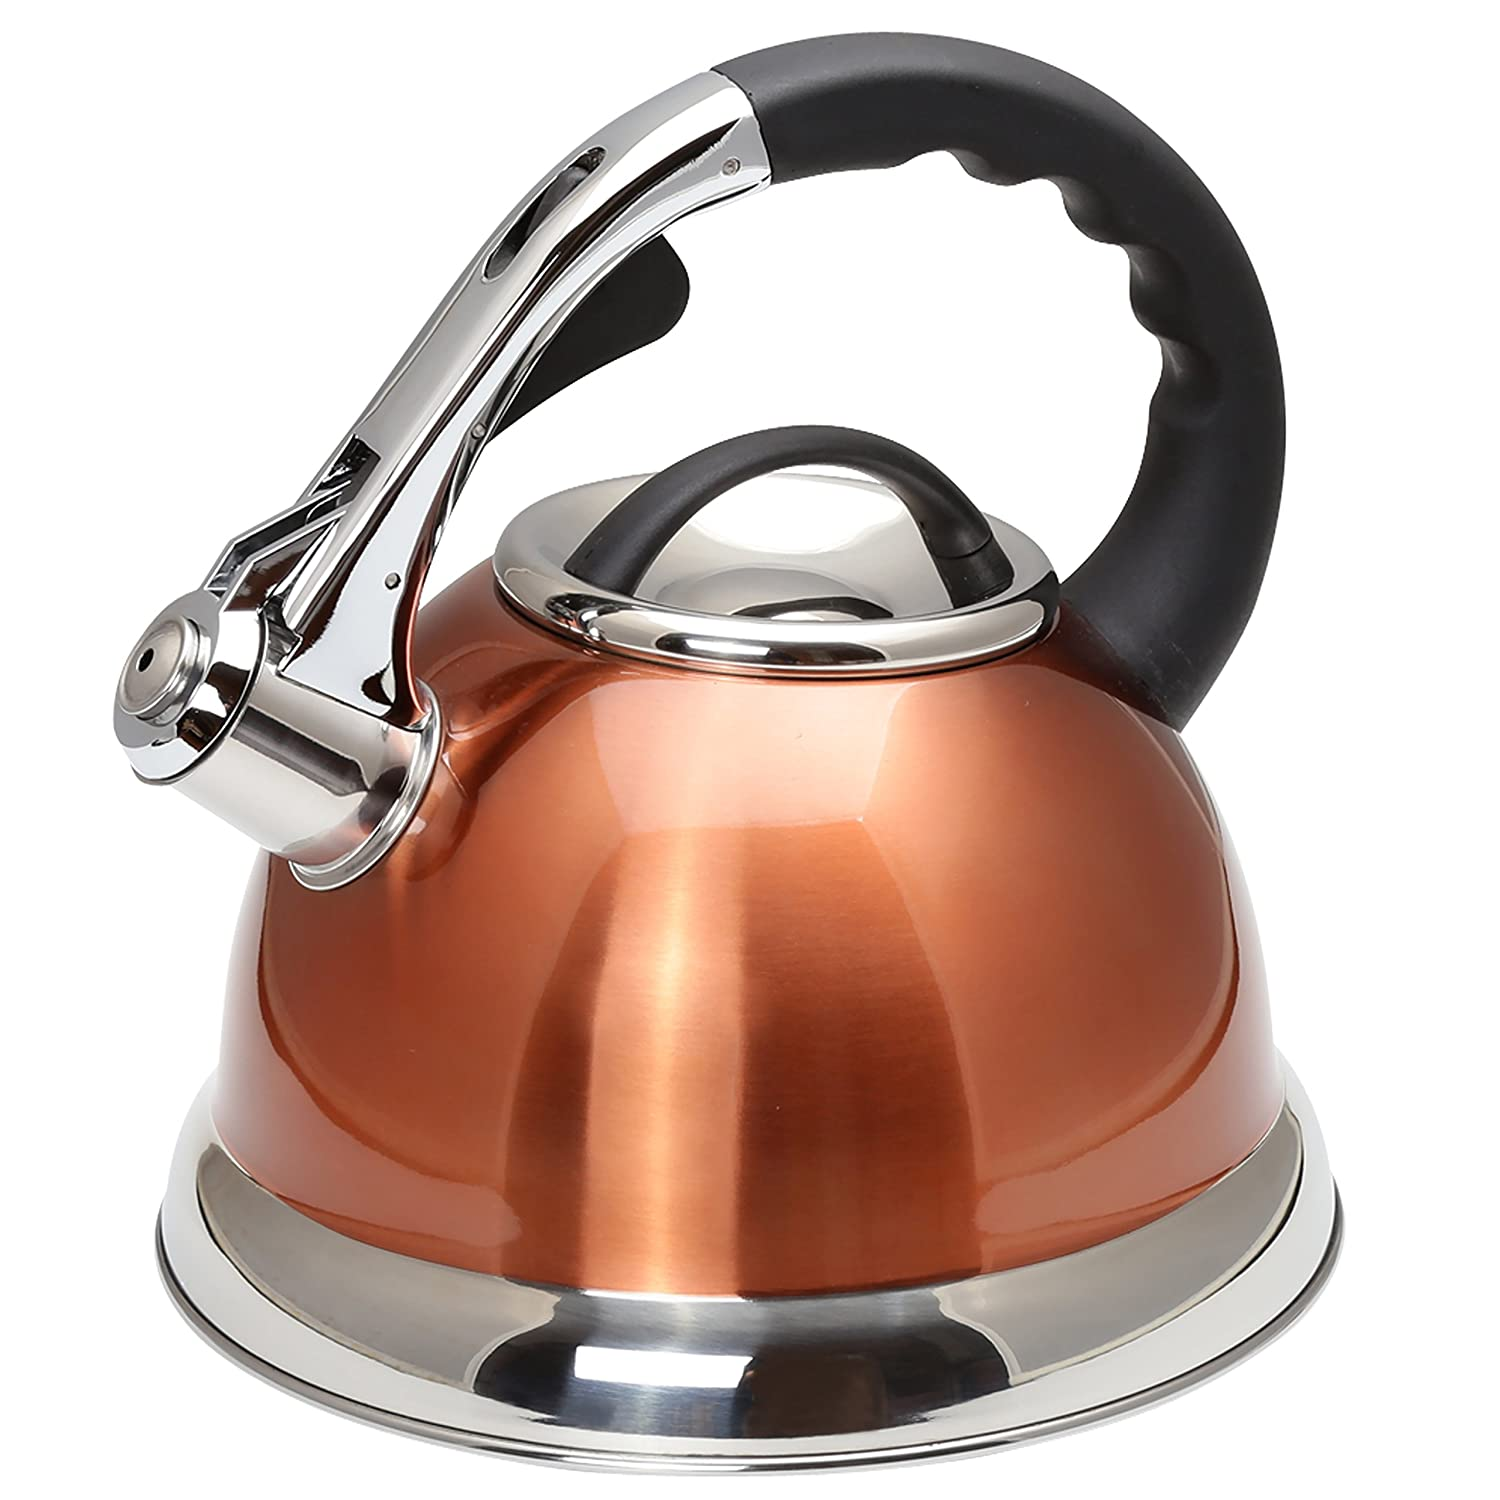 Creative Home 77032 Camille Stainless Steel Whistling Tea Kettle, 3-Quart, Opaque Black Evco International